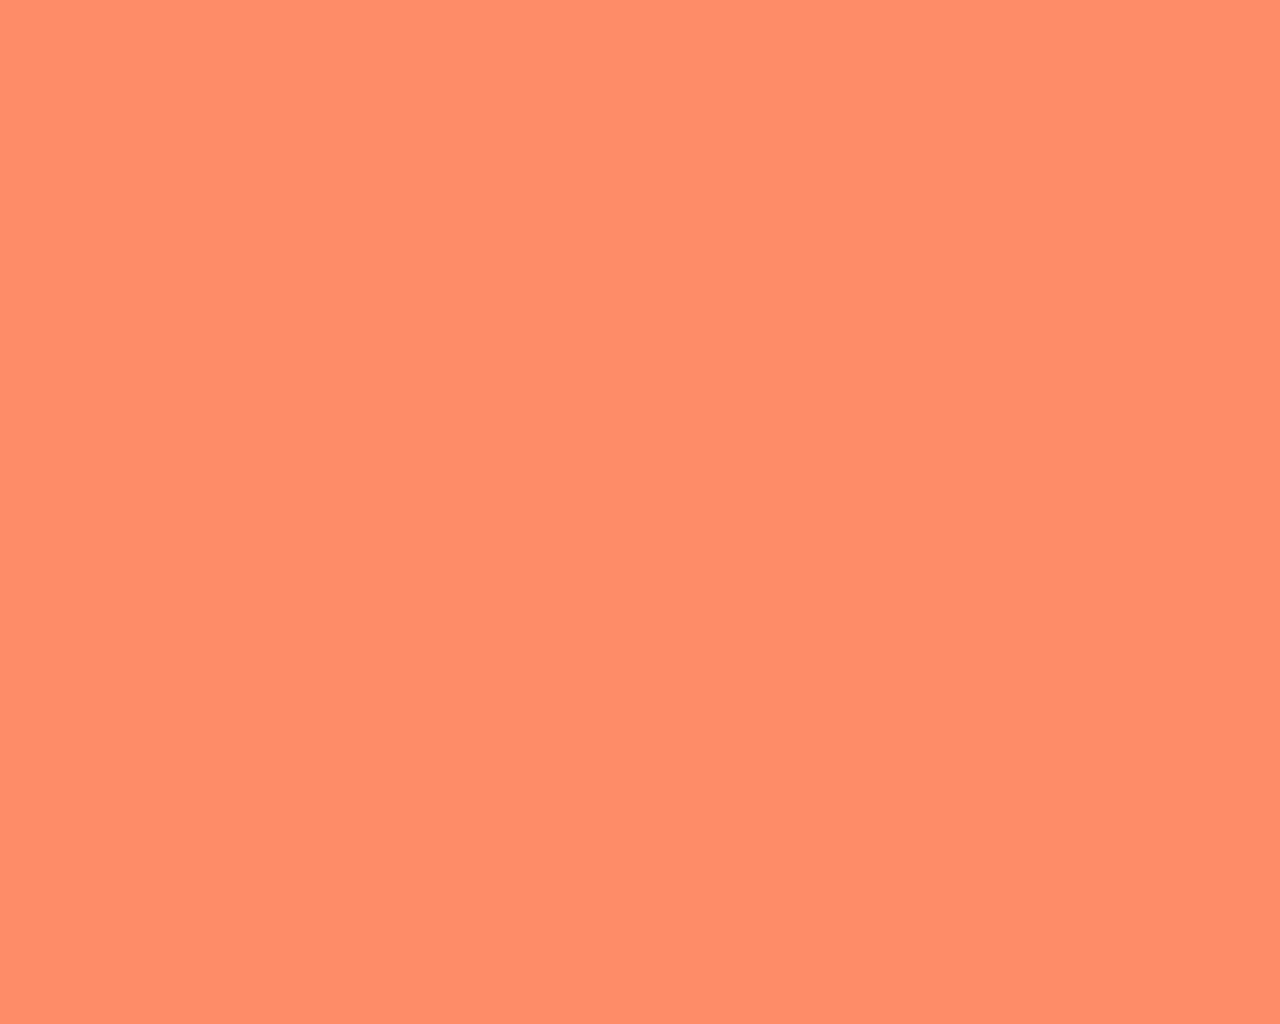 1280x1024 Salmon Solid Color Background